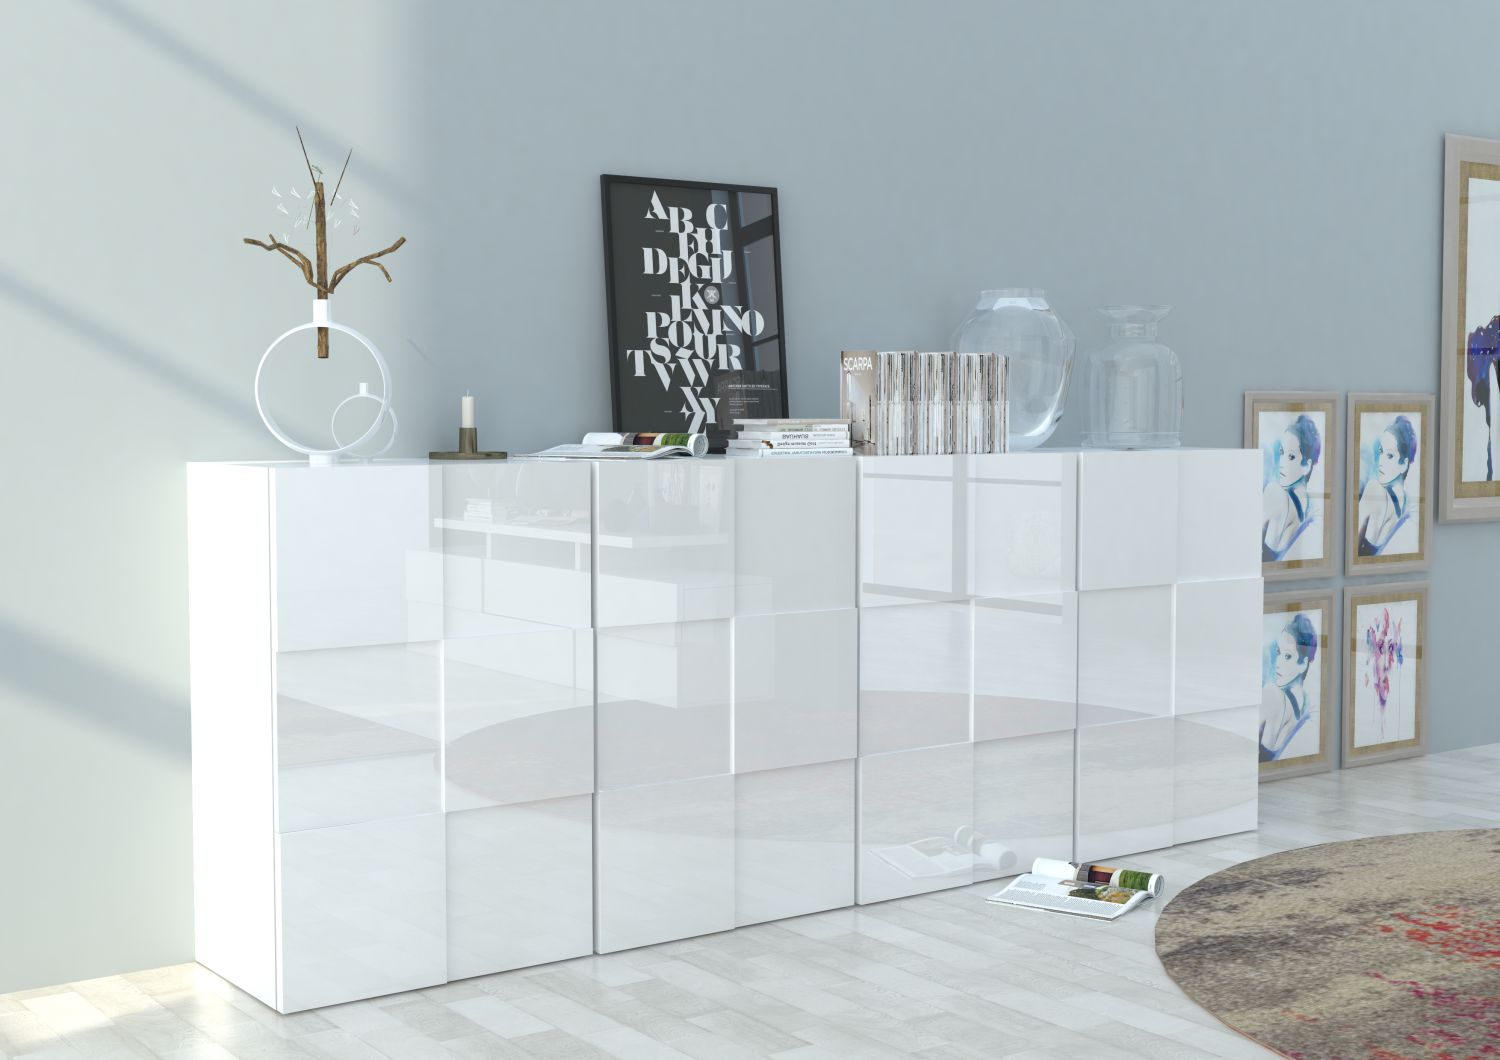 quadro hochglanz sideboard in weiss breite 240 cm ebay. Black Bedroom Furniture Sets. Home Design Ideas